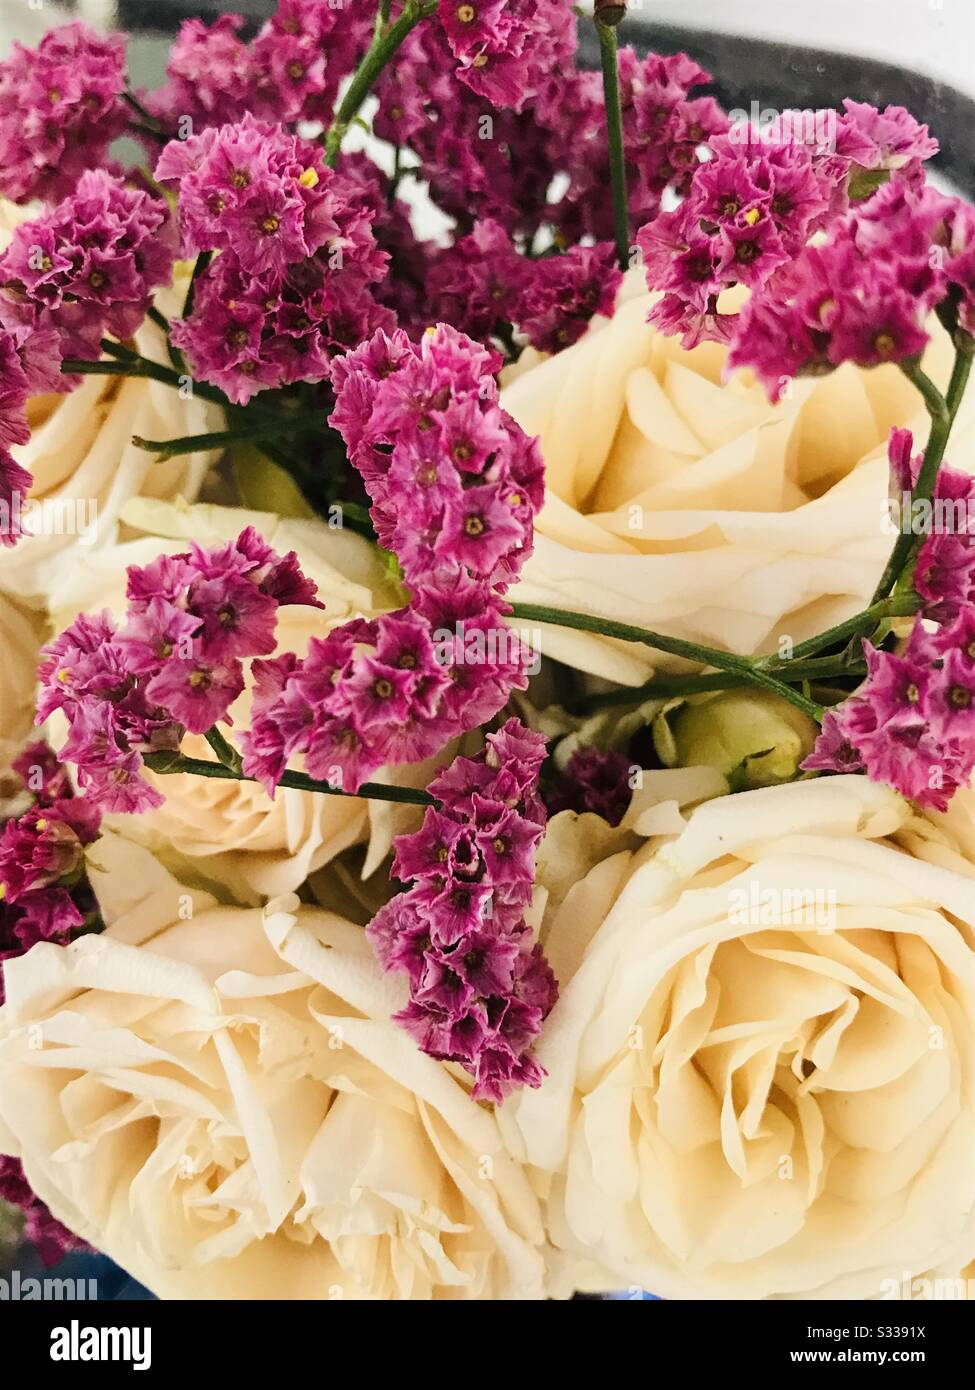 A Bouquet Full Of Cream Off White Aromatic Roses Circles With Dark Pink Filler Flowers